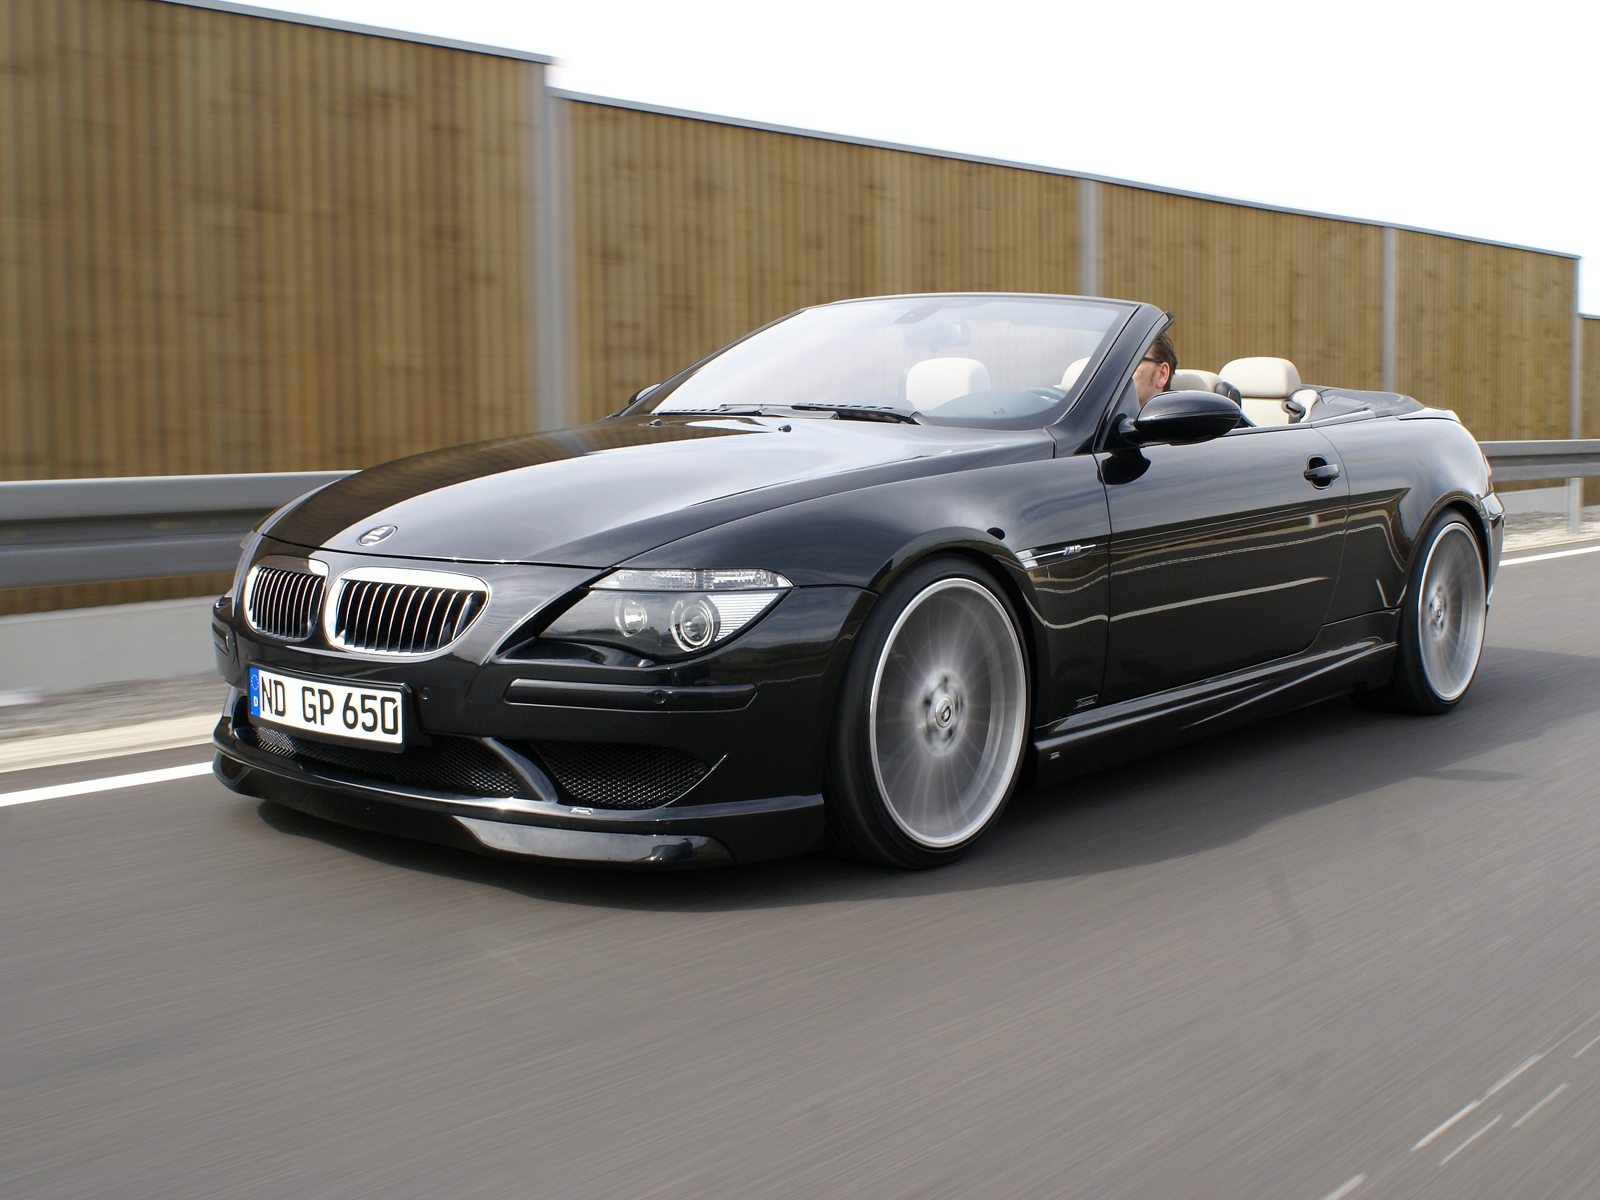 g power bmw m6 hurricane convertible e64 photos. Black Bedroom Furniture Sets. Home Design Ideas